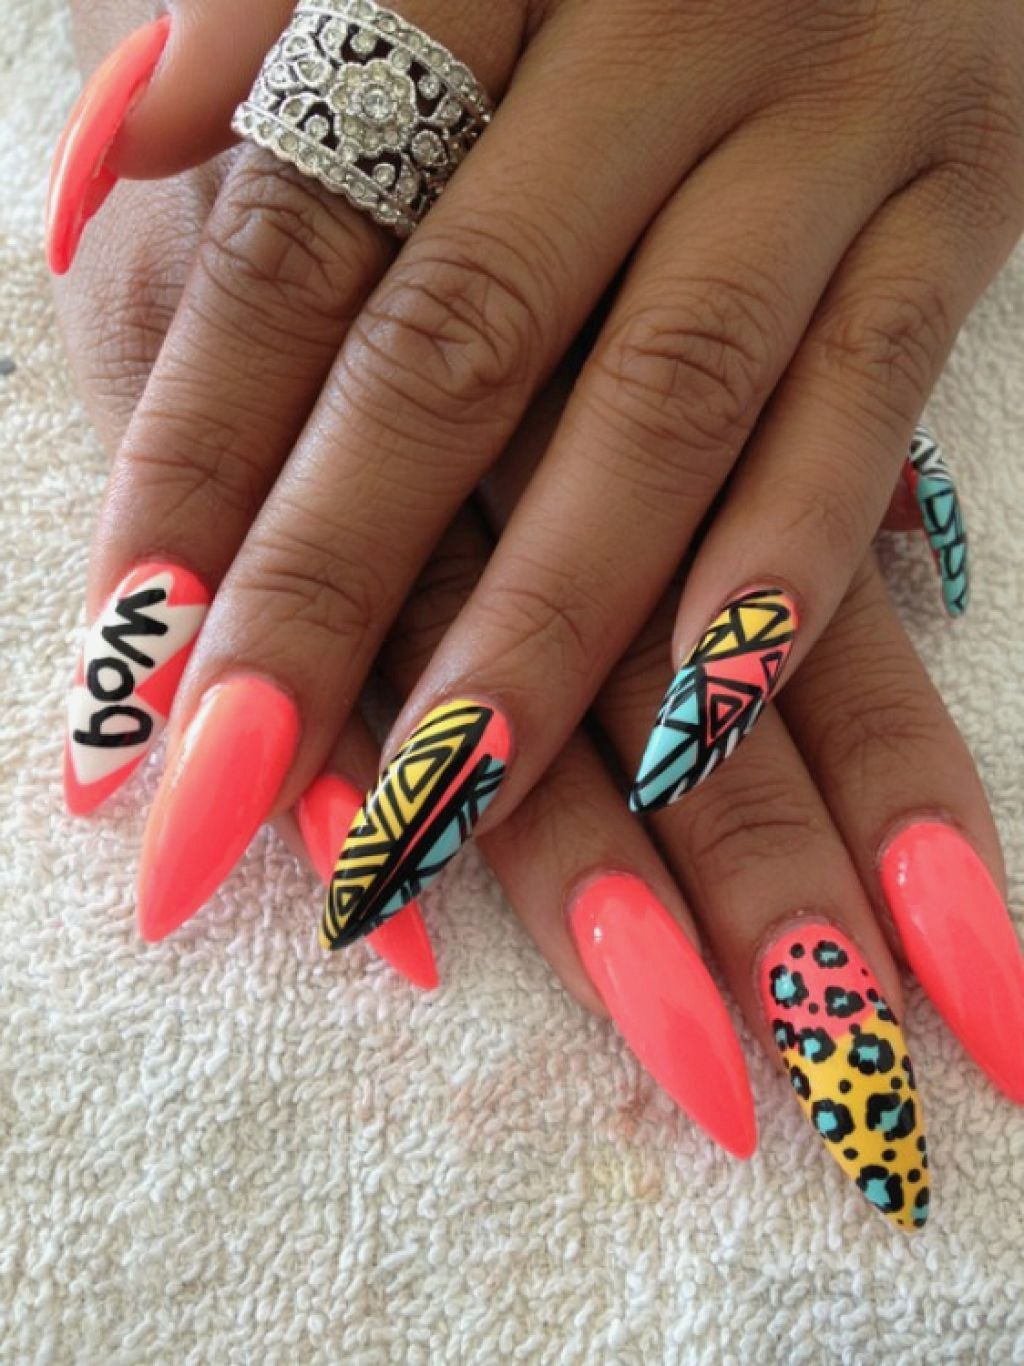 Nails Different Nails Designs Different Nail Designs And N Nails